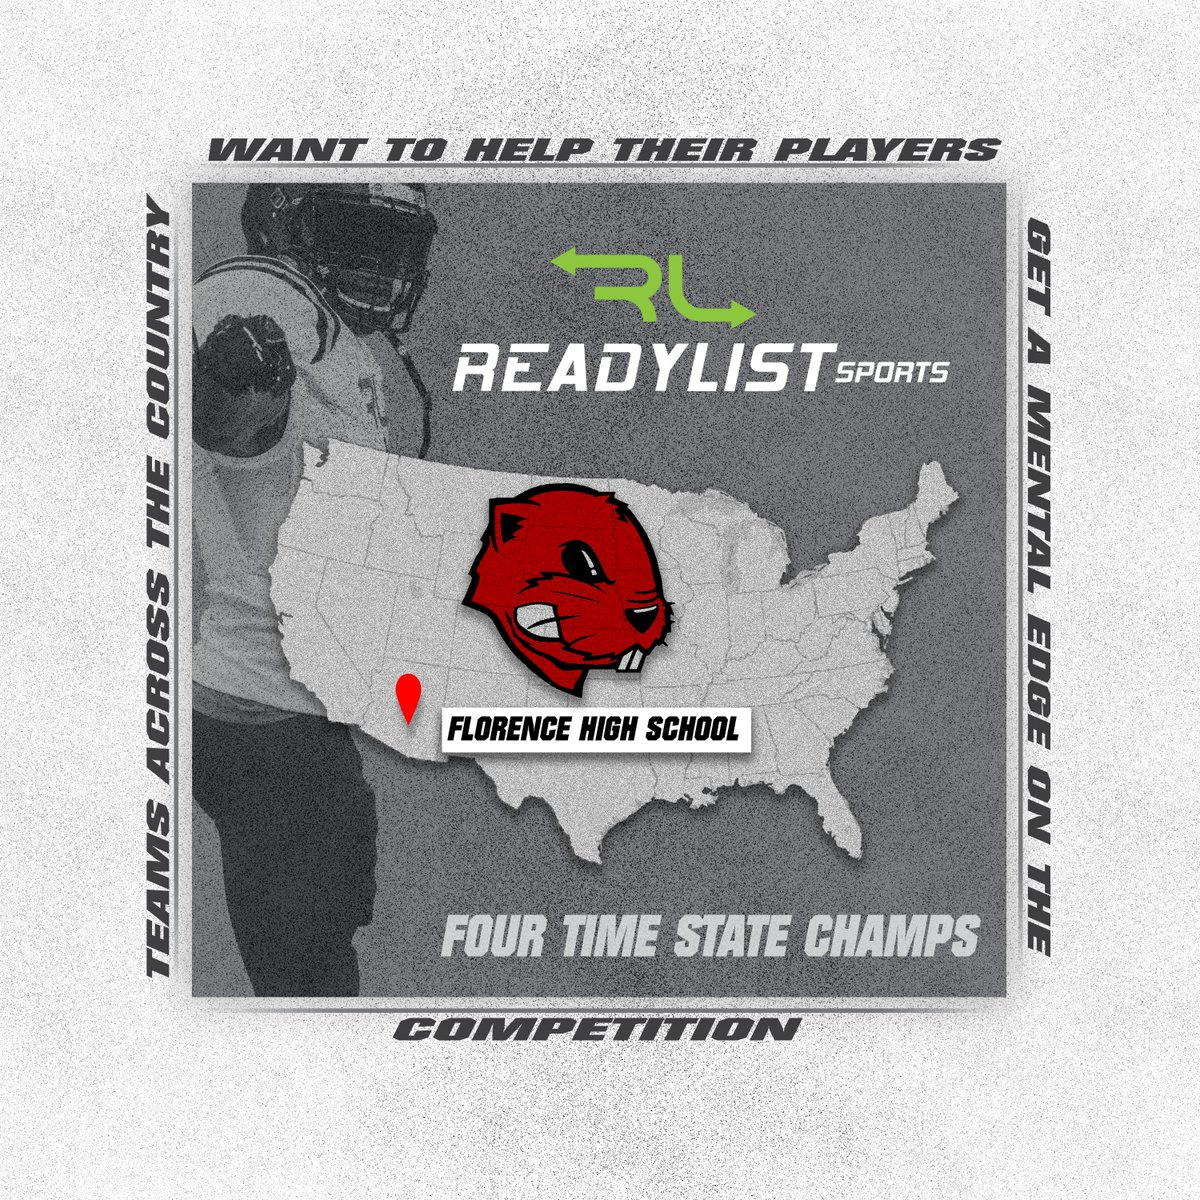 We want to welcome Florence High School to our platform. We are thrilled to have the Florence football team focus their learning using ReadyList Sports https://t.co/W3mxeSqFz1 @Fhsgopherfball #Gophers #Football #Playbook https://t.co/vi1iH1zHPn